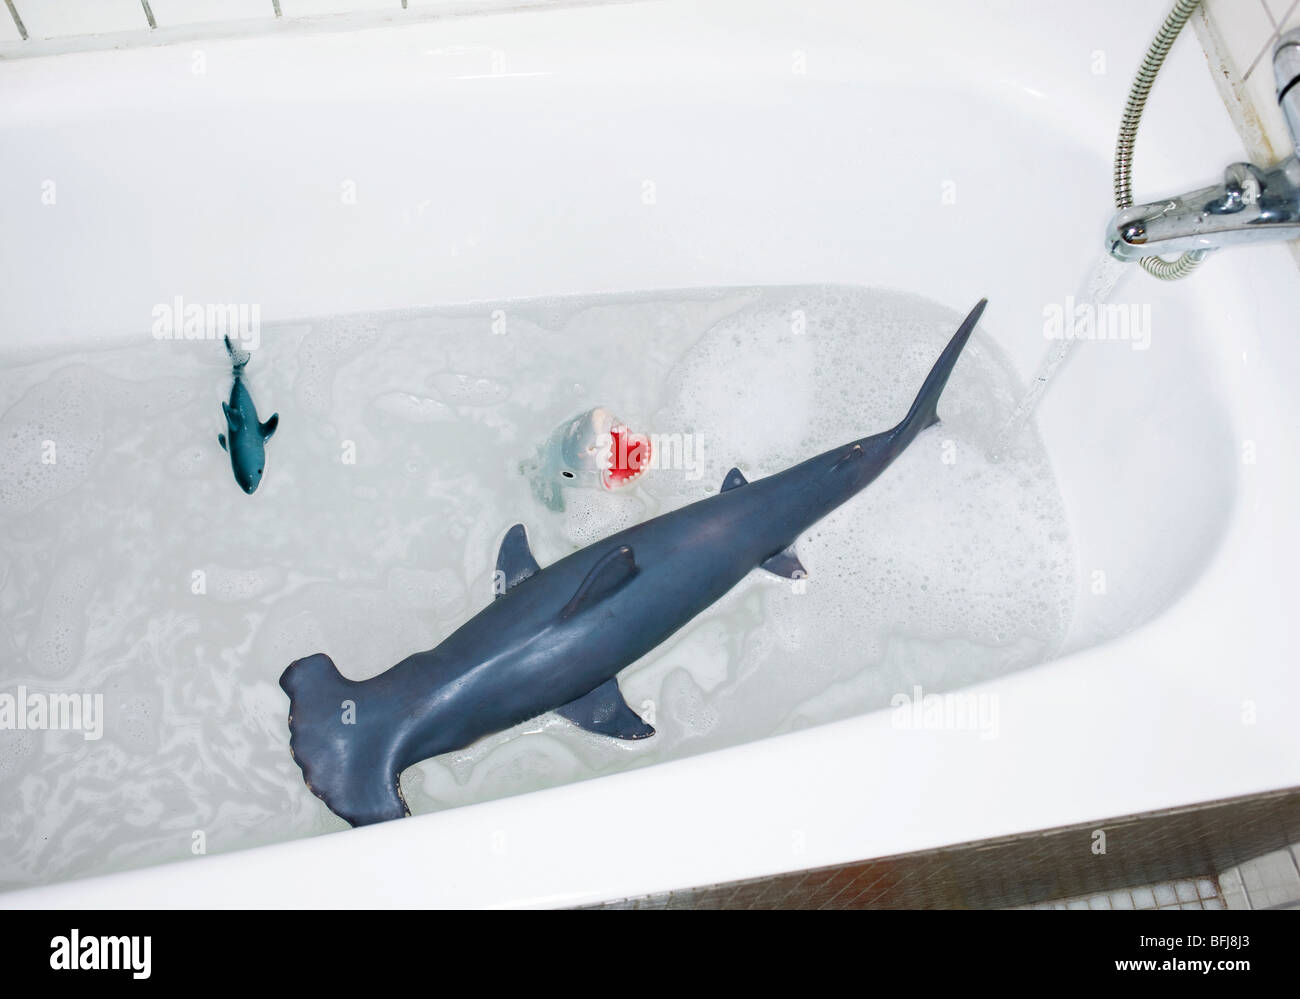 Toys in a bath tub, Sweden. - Stock Image